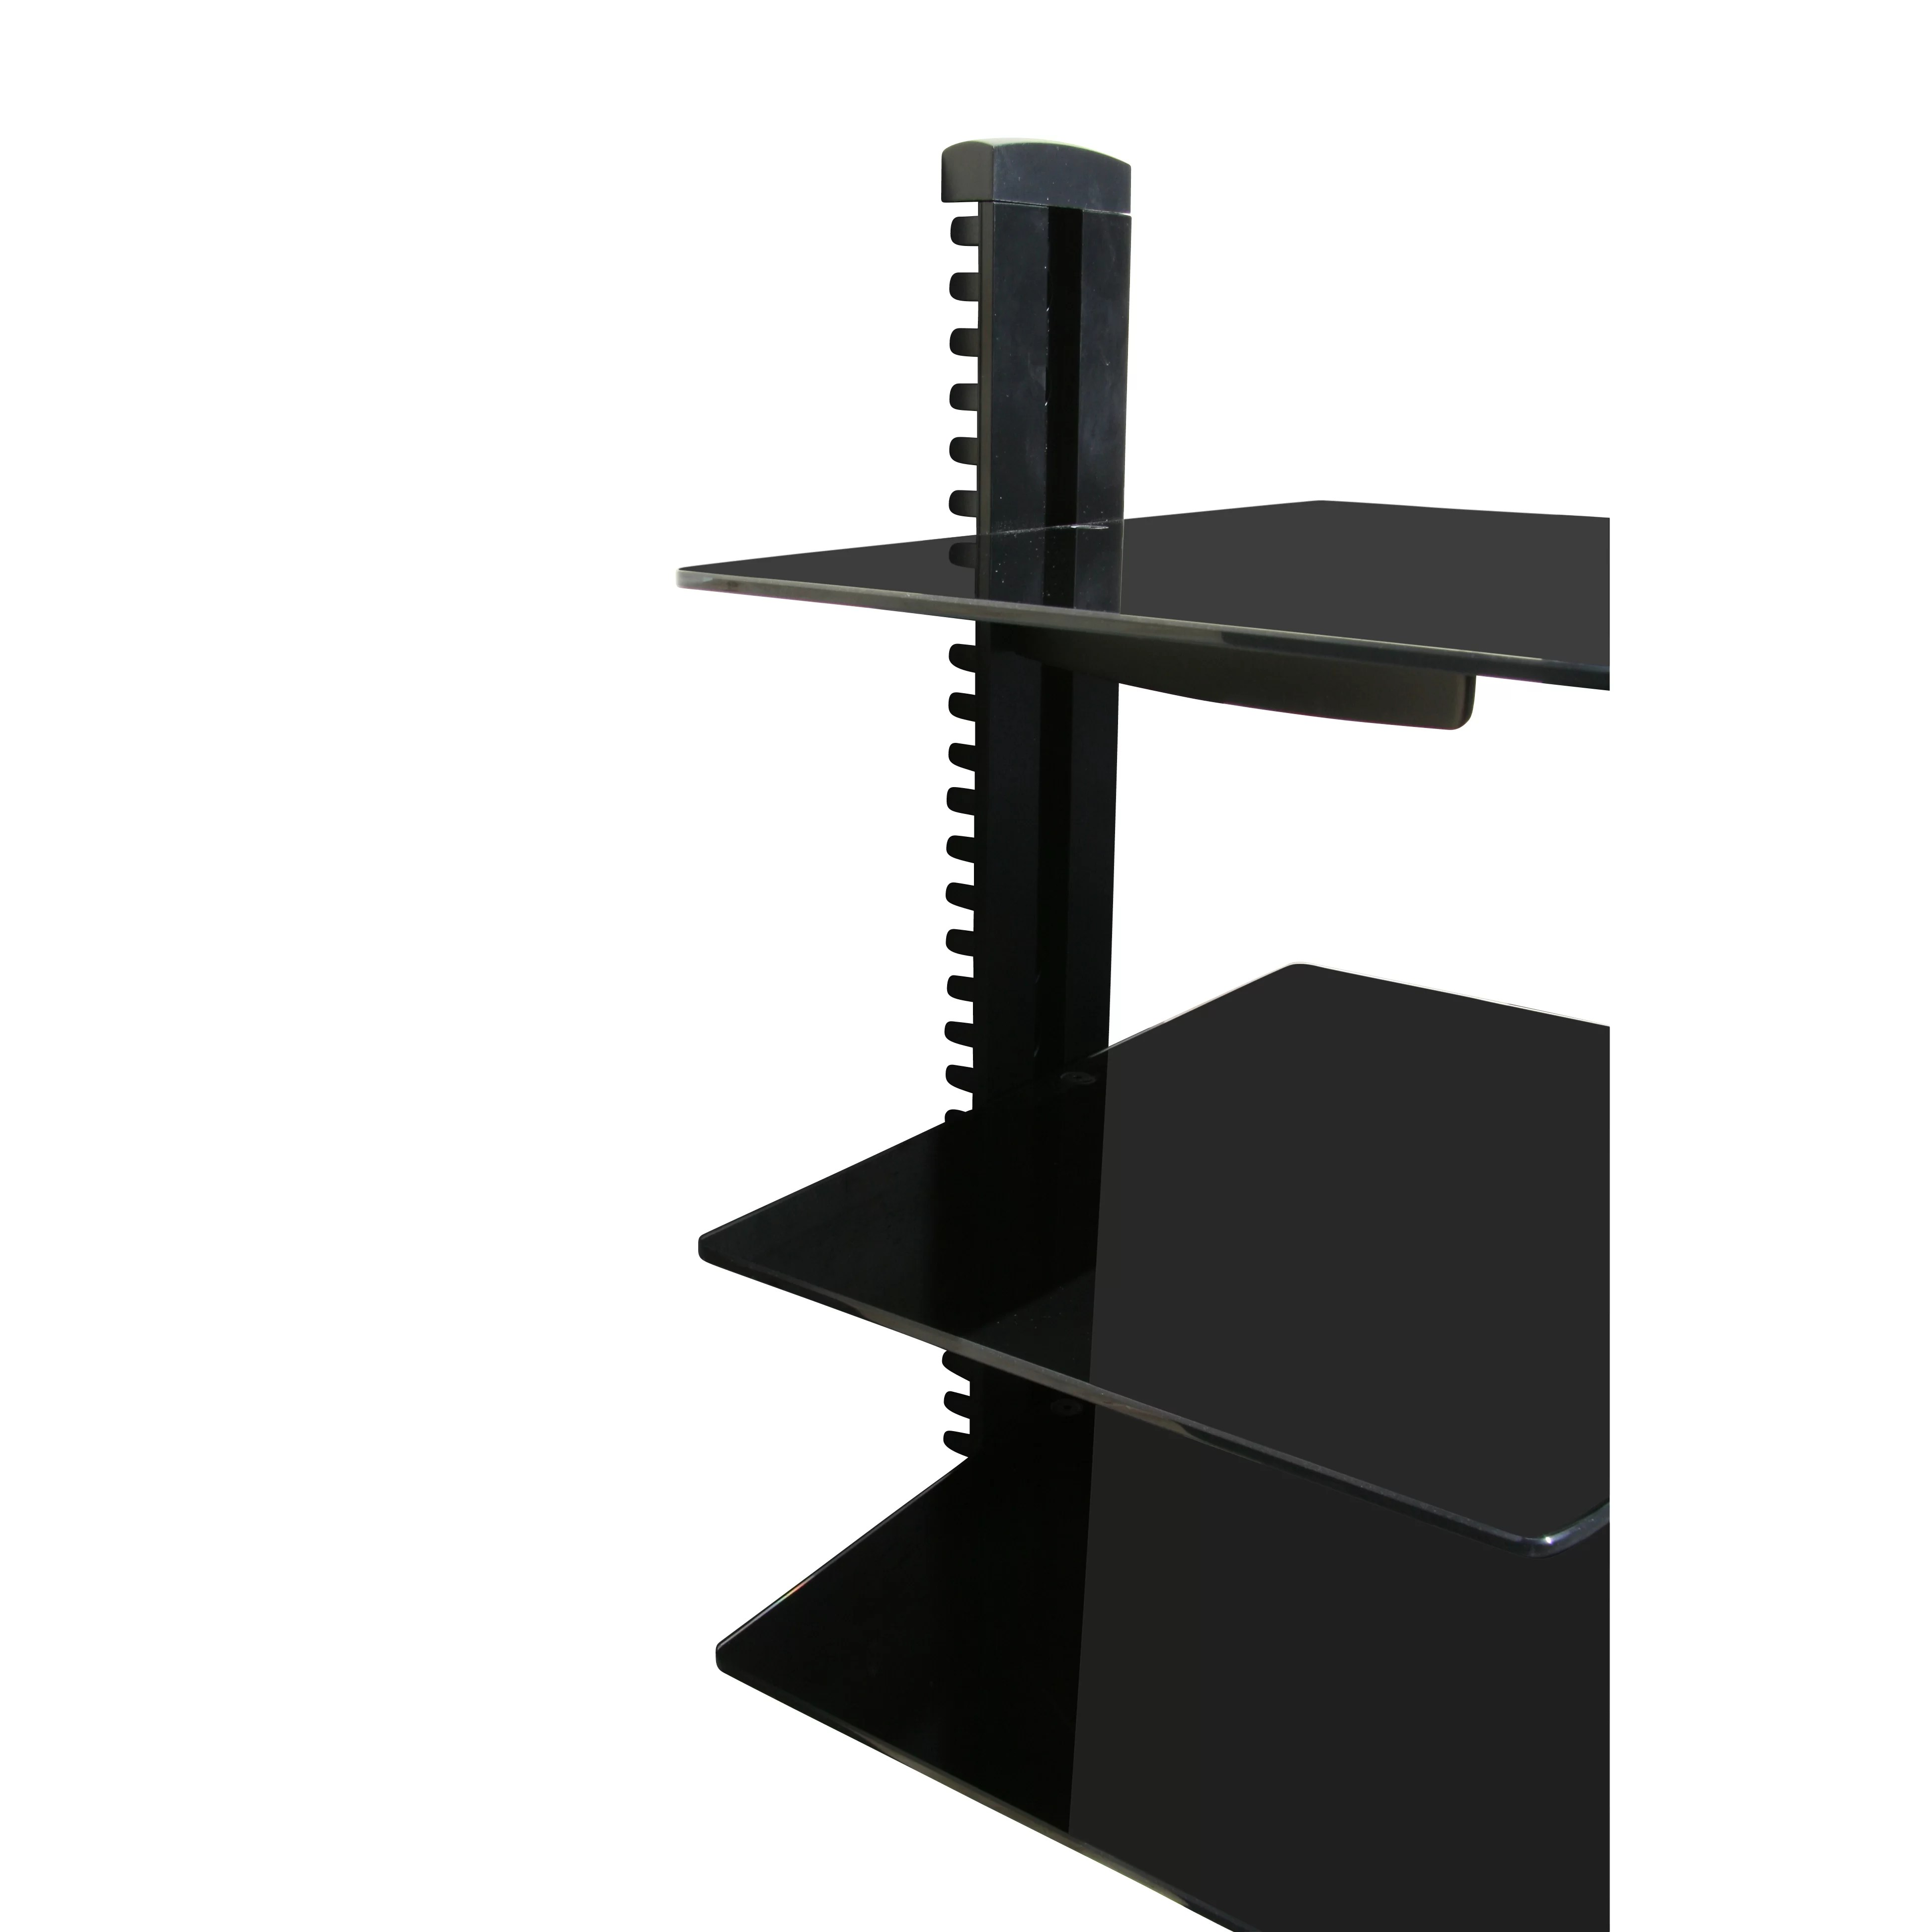 Adjustable Wall Shelf System Mount It Wall Mounted Av Component Shelving System With 3